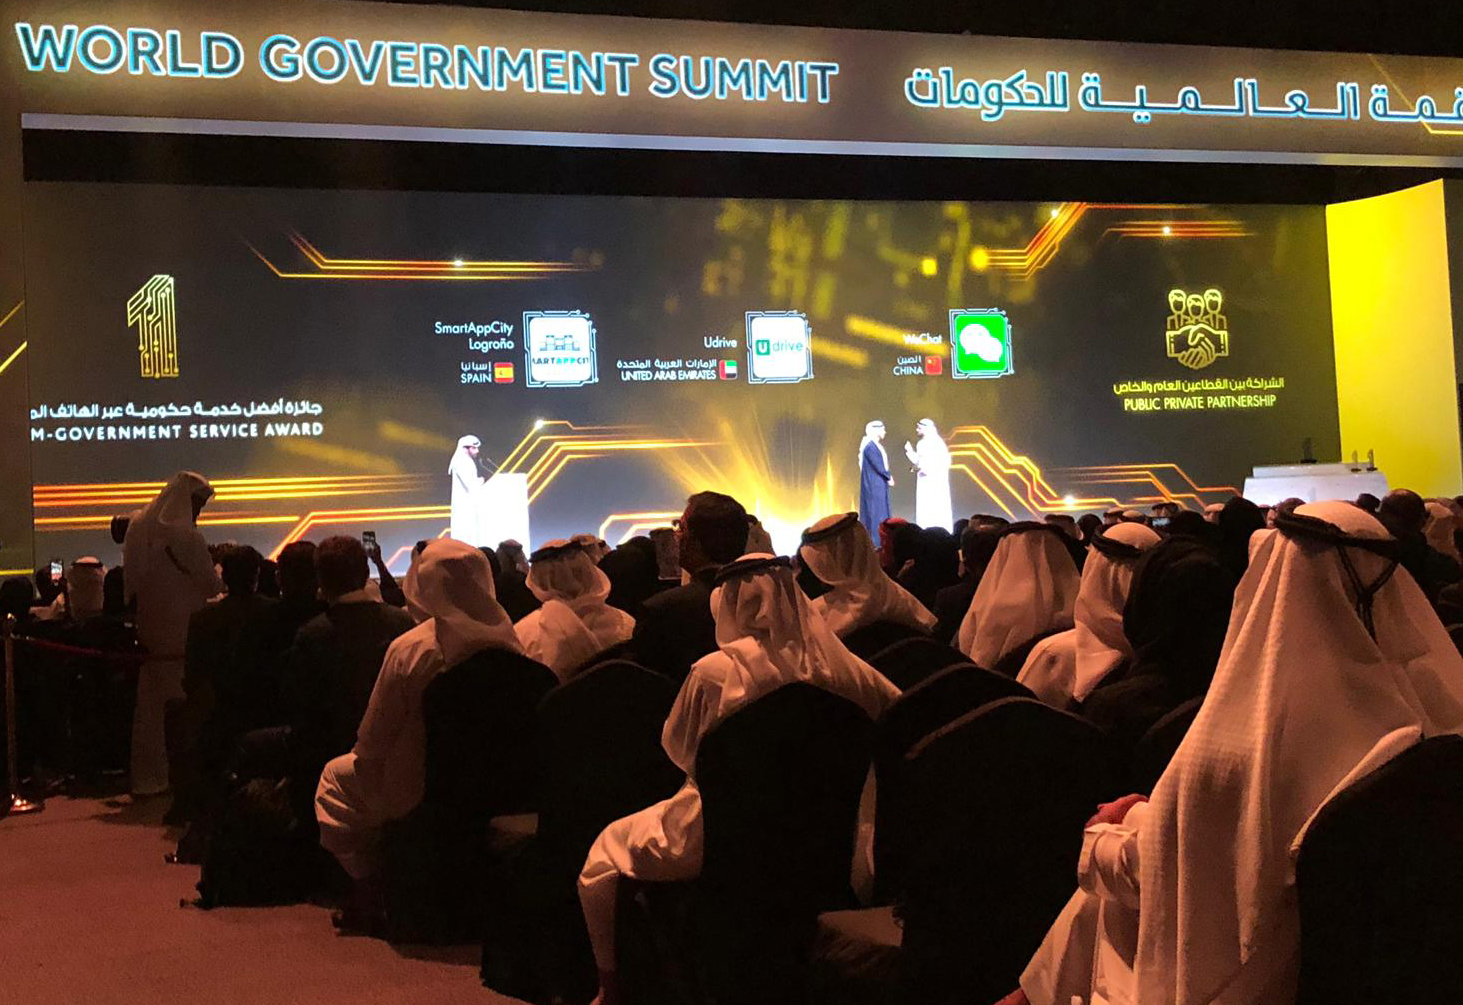 SmartAppCity, finalista en los premios celebrados en World Government Summit en Dubai